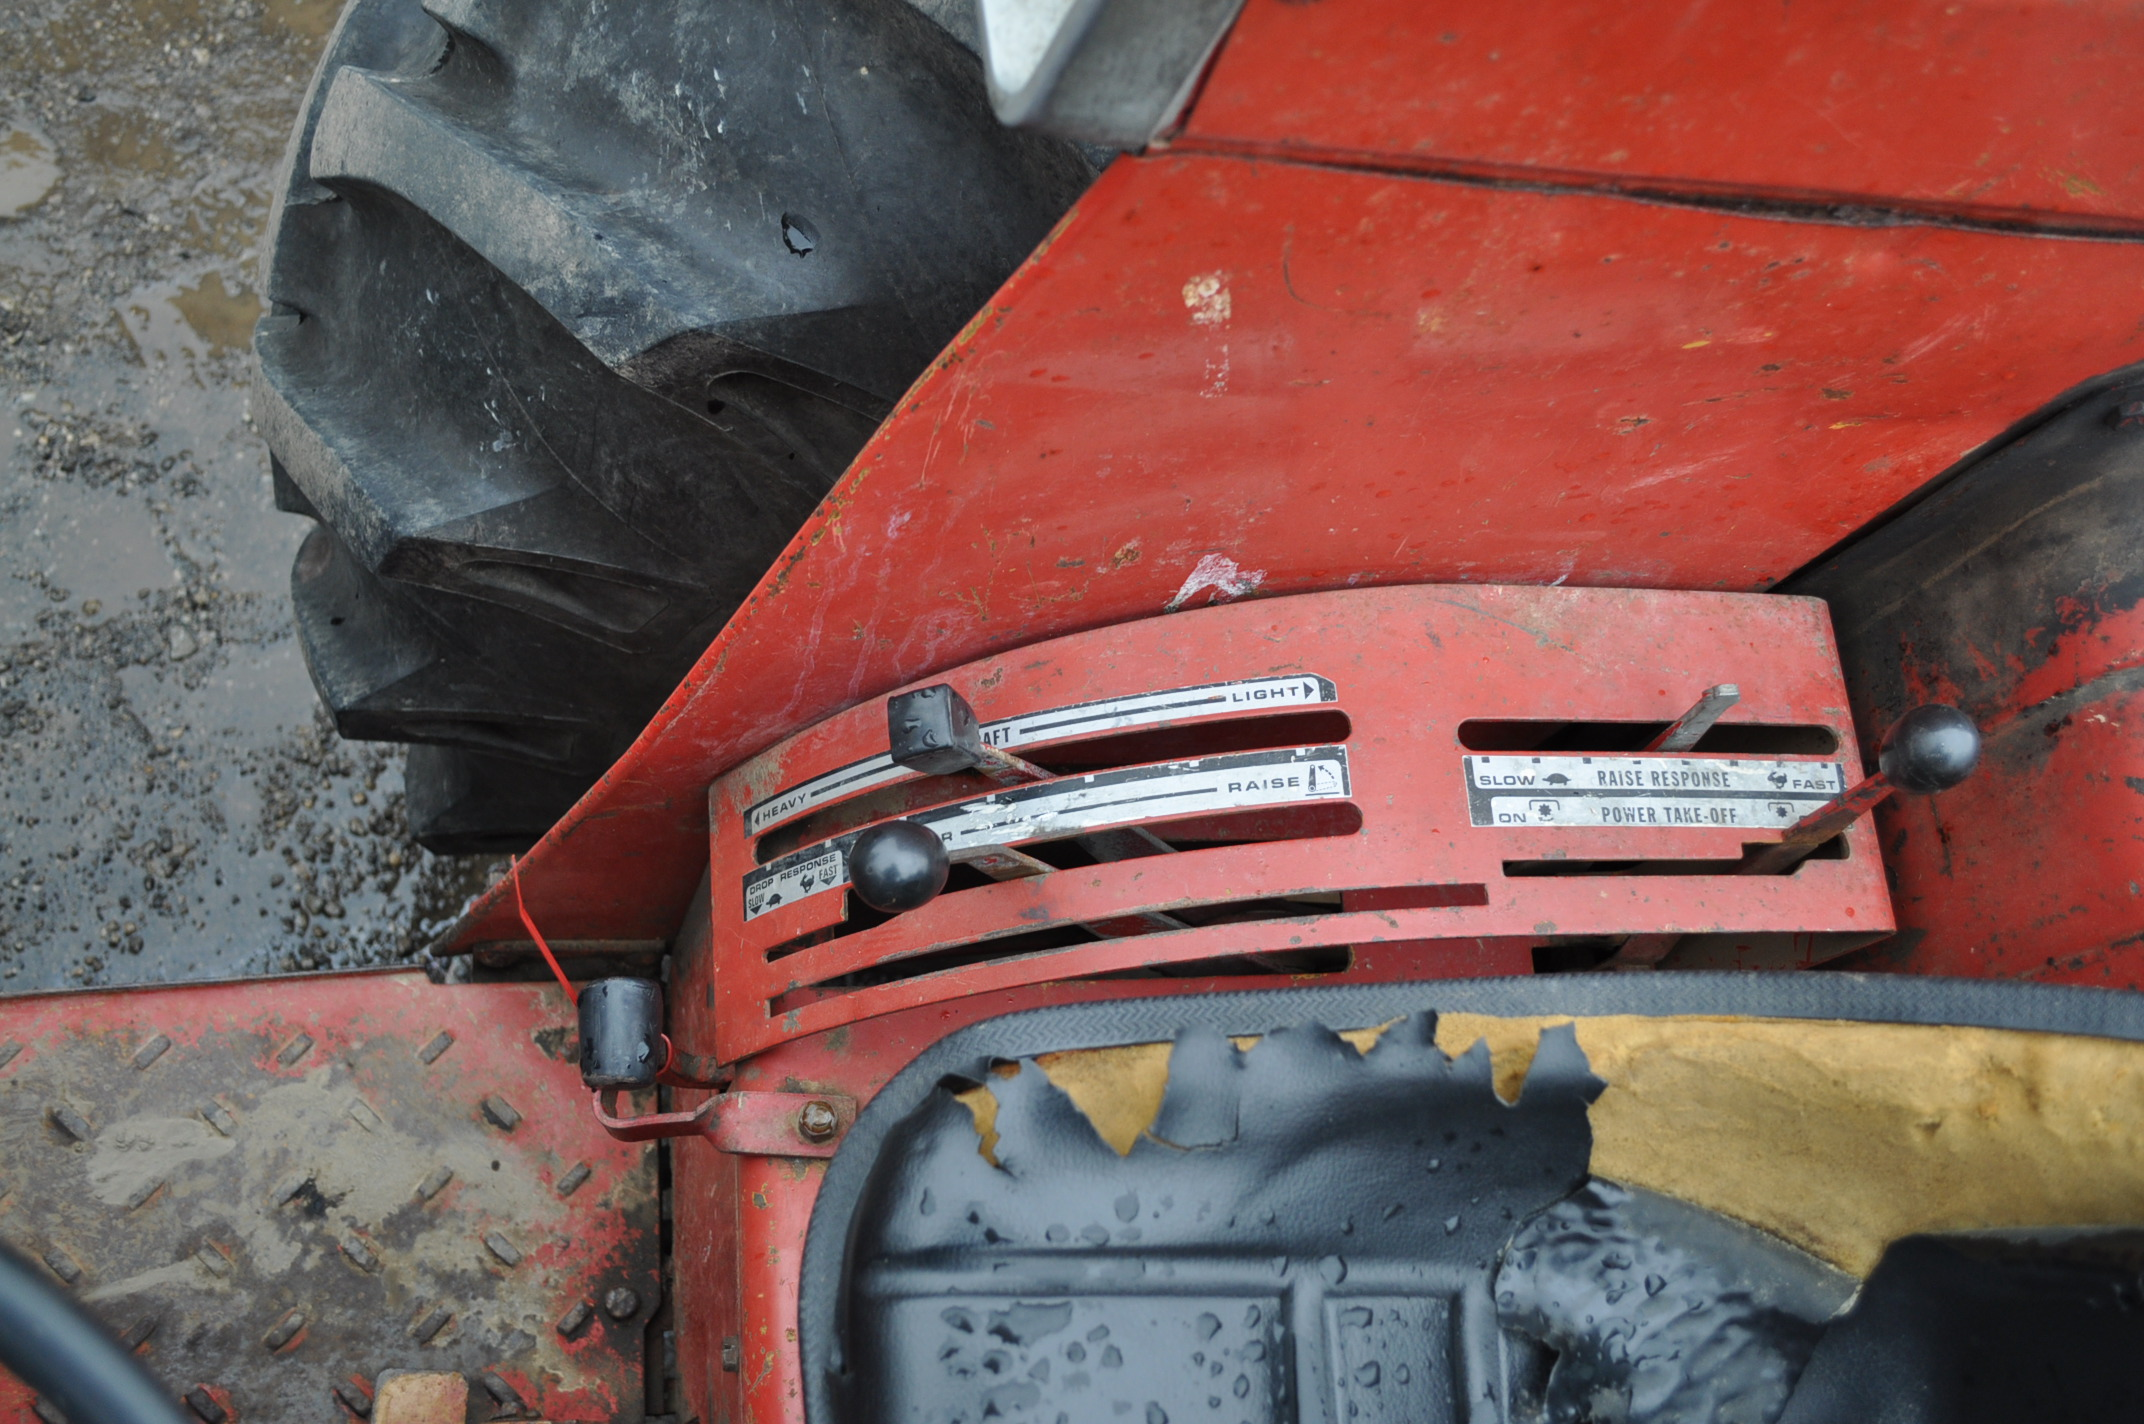 International 674 tractor, 16.9-30 rear, 7.50-16 front, diesel, single hyd, 3pt, 540 PTO, sells with - Image 15 of 16